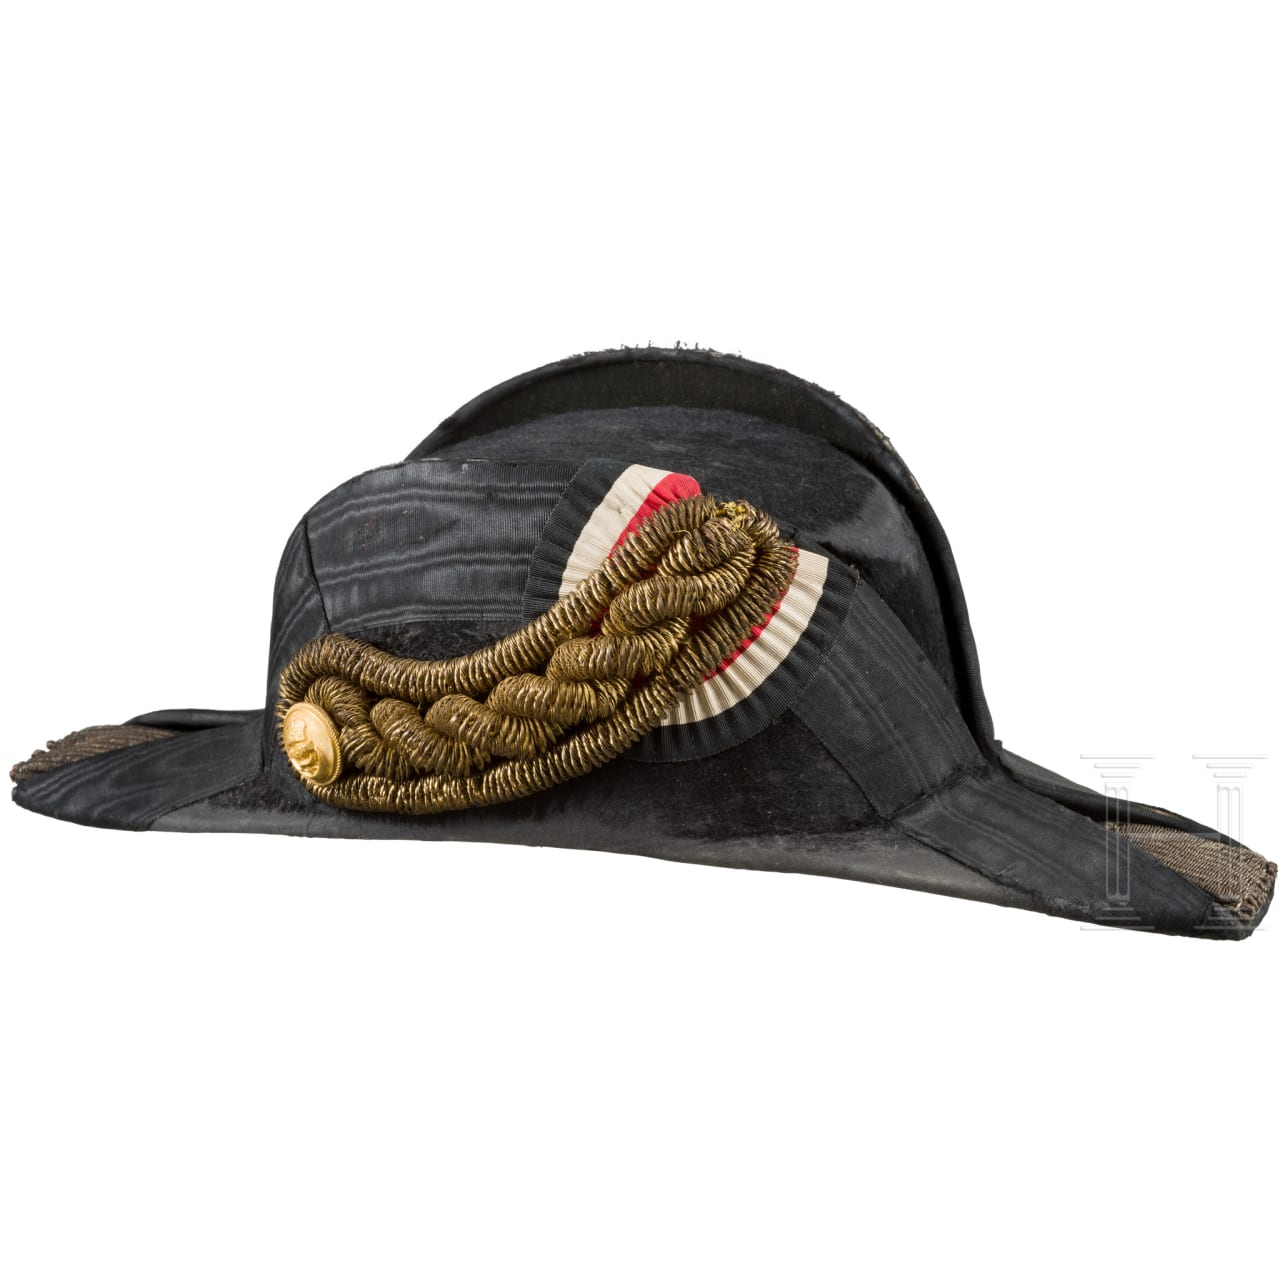 Bicorne for officers of the Imperial Navy